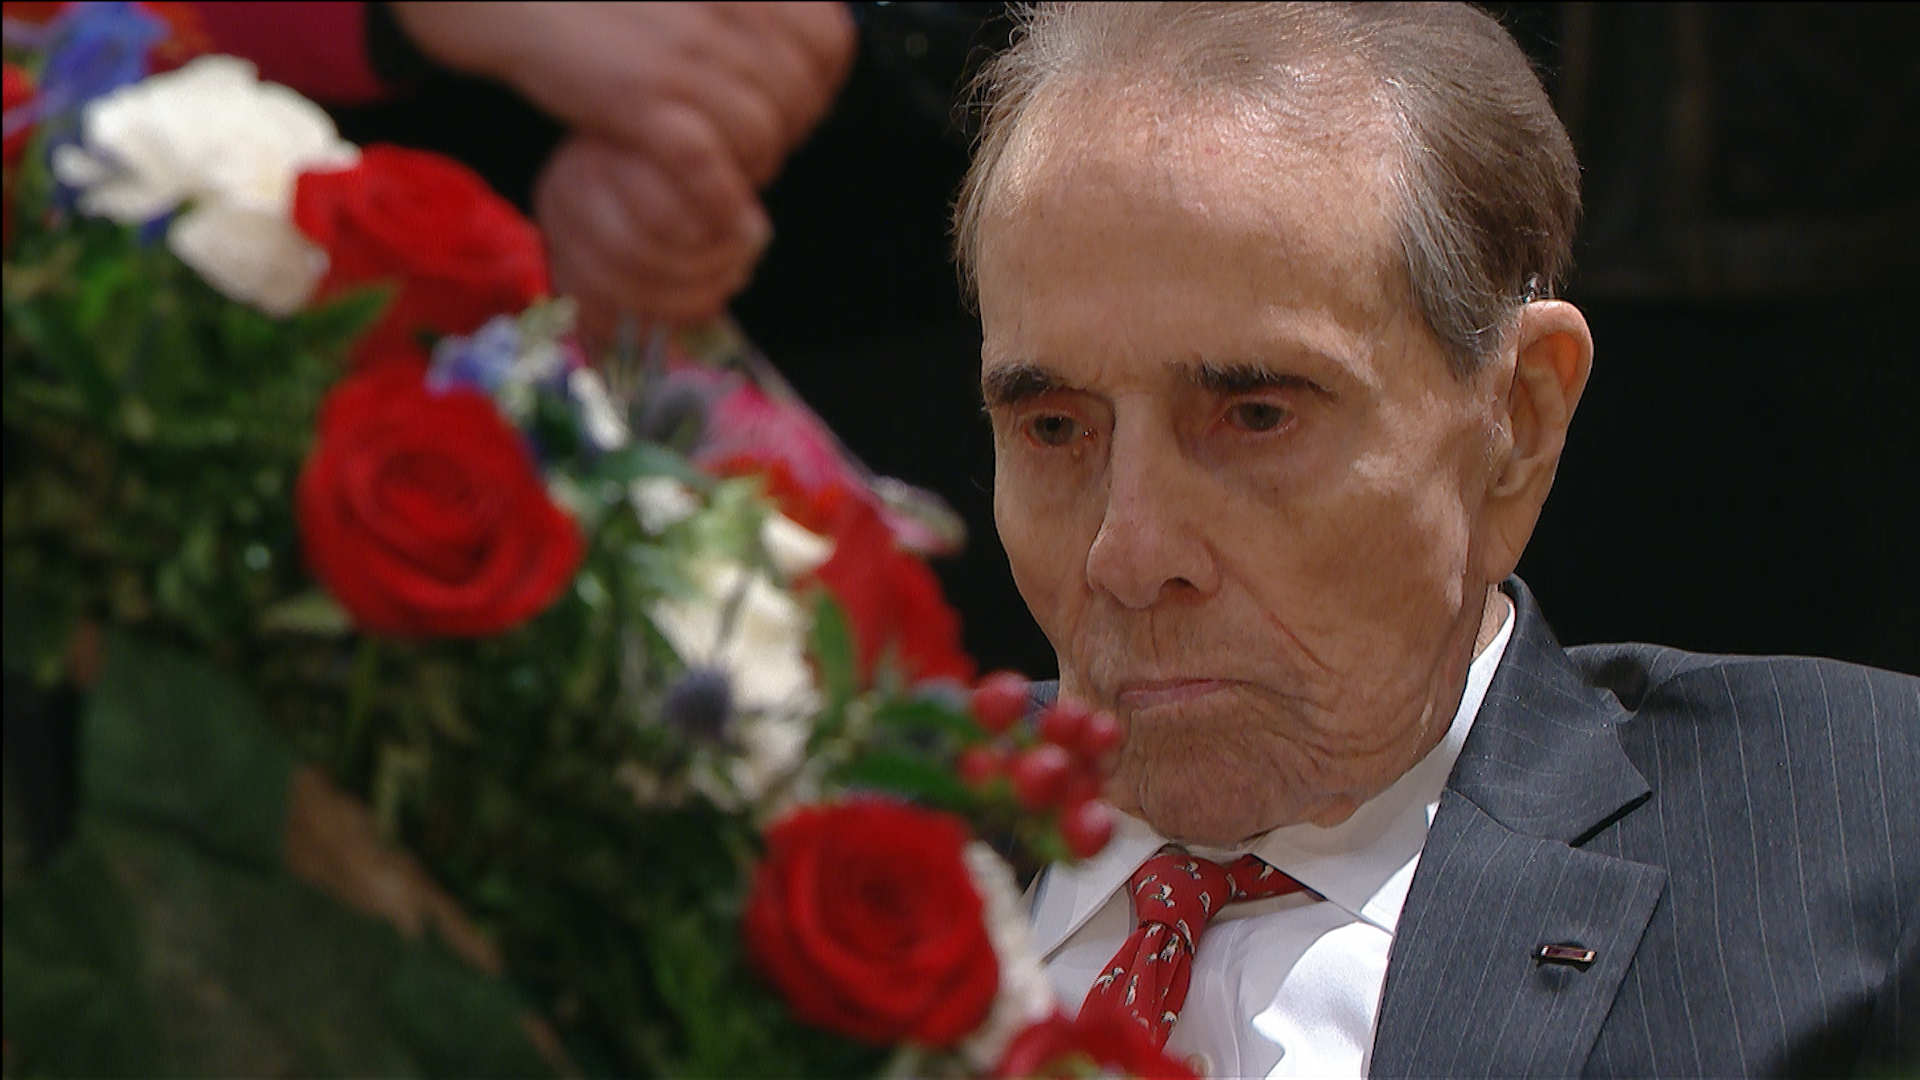 Bob Dole rises from wheelchair to give George H.W. Bush a final salute